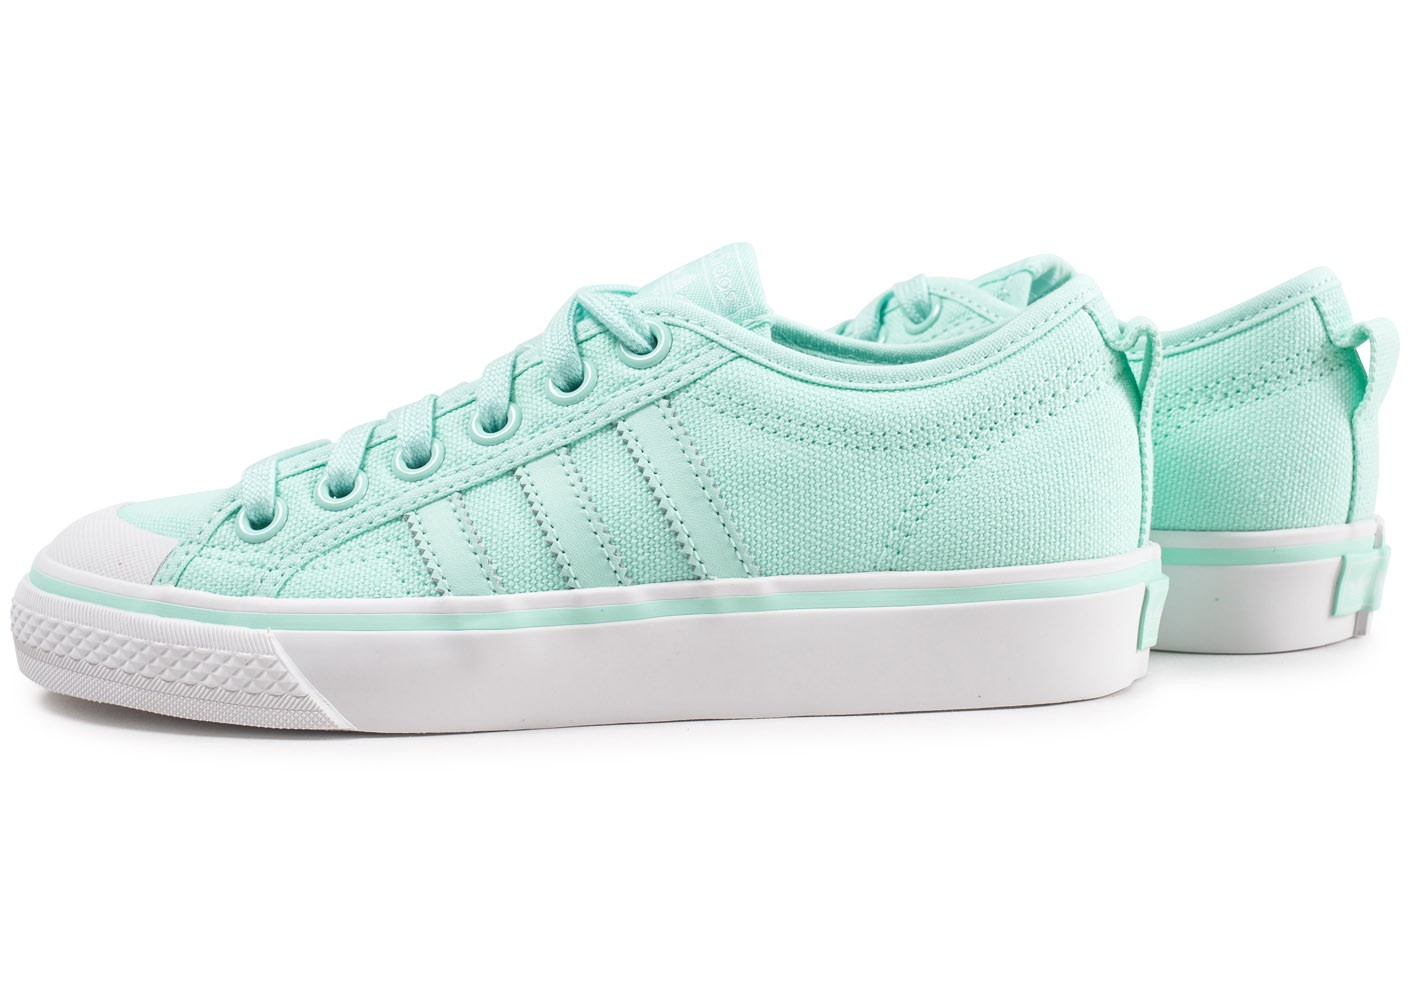 new style 8d006 9592b Chaussures Femme Chausport Nizza Verte Adidas Menthe qwYH0Ax